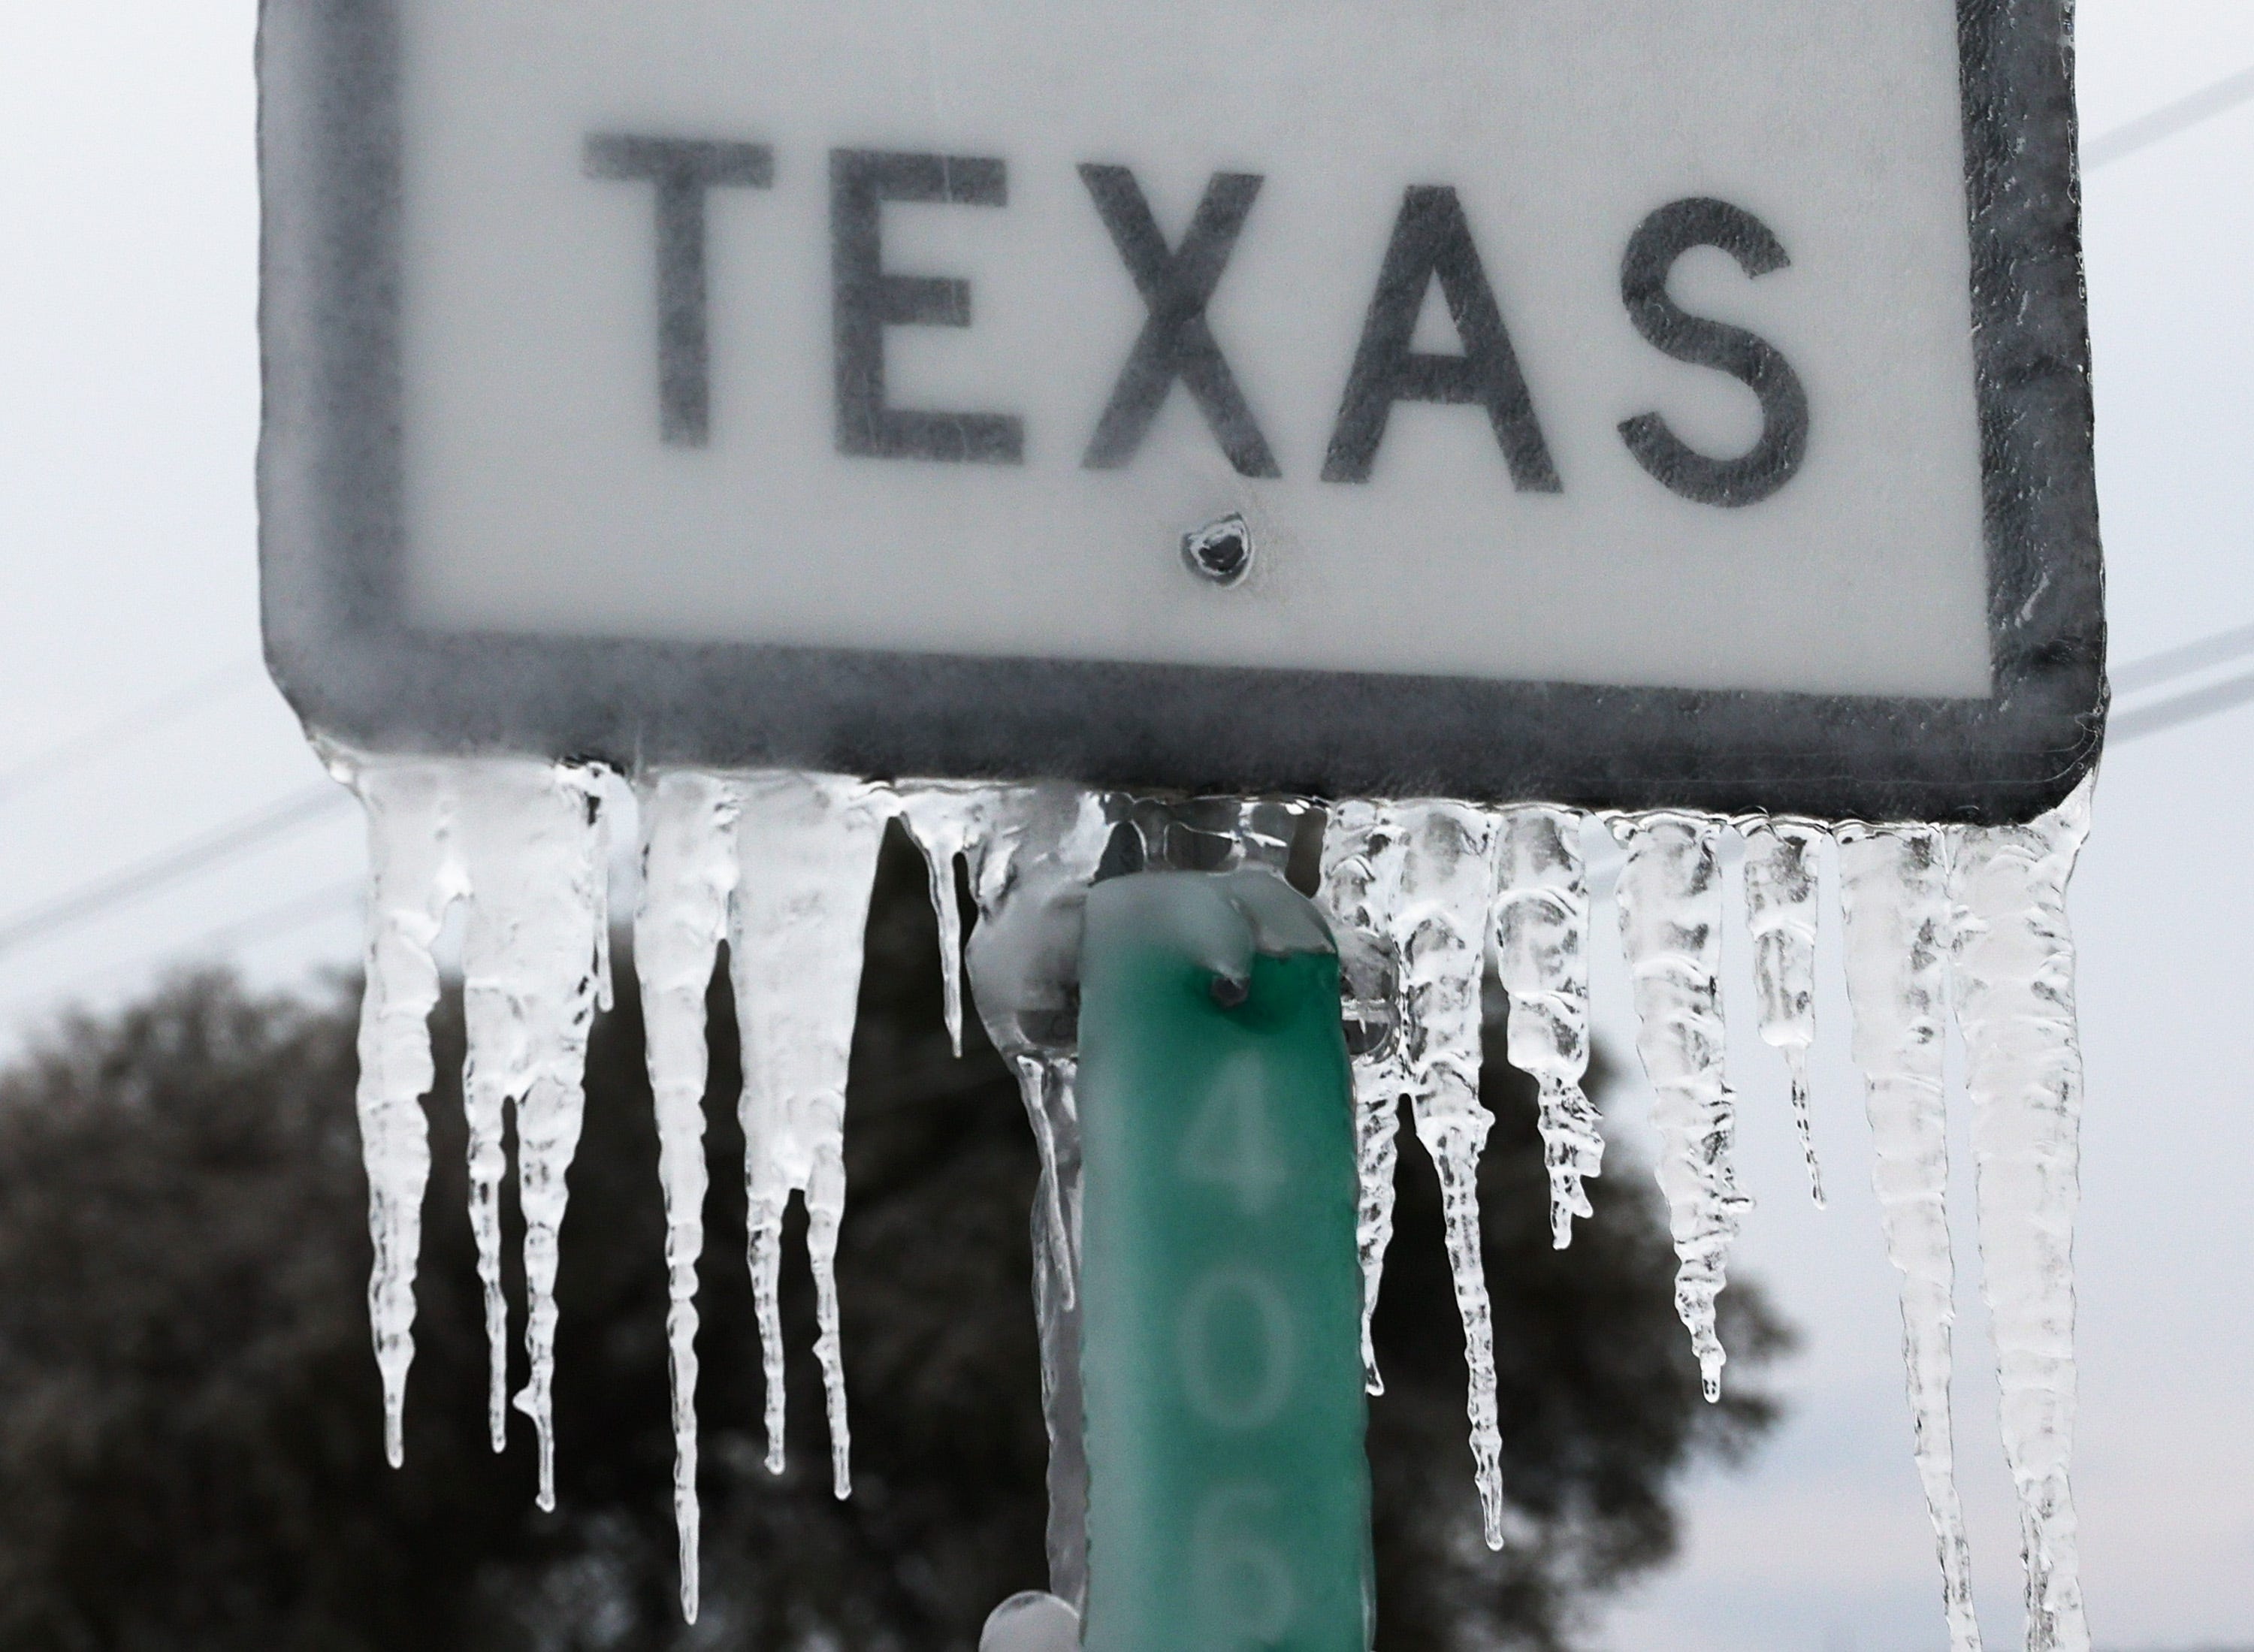 usatoday.com - Nathan Bomey, USA TODAY - Texas electricity provider files Chapter 11 bankruptcy after devastating winter storm, power blackout